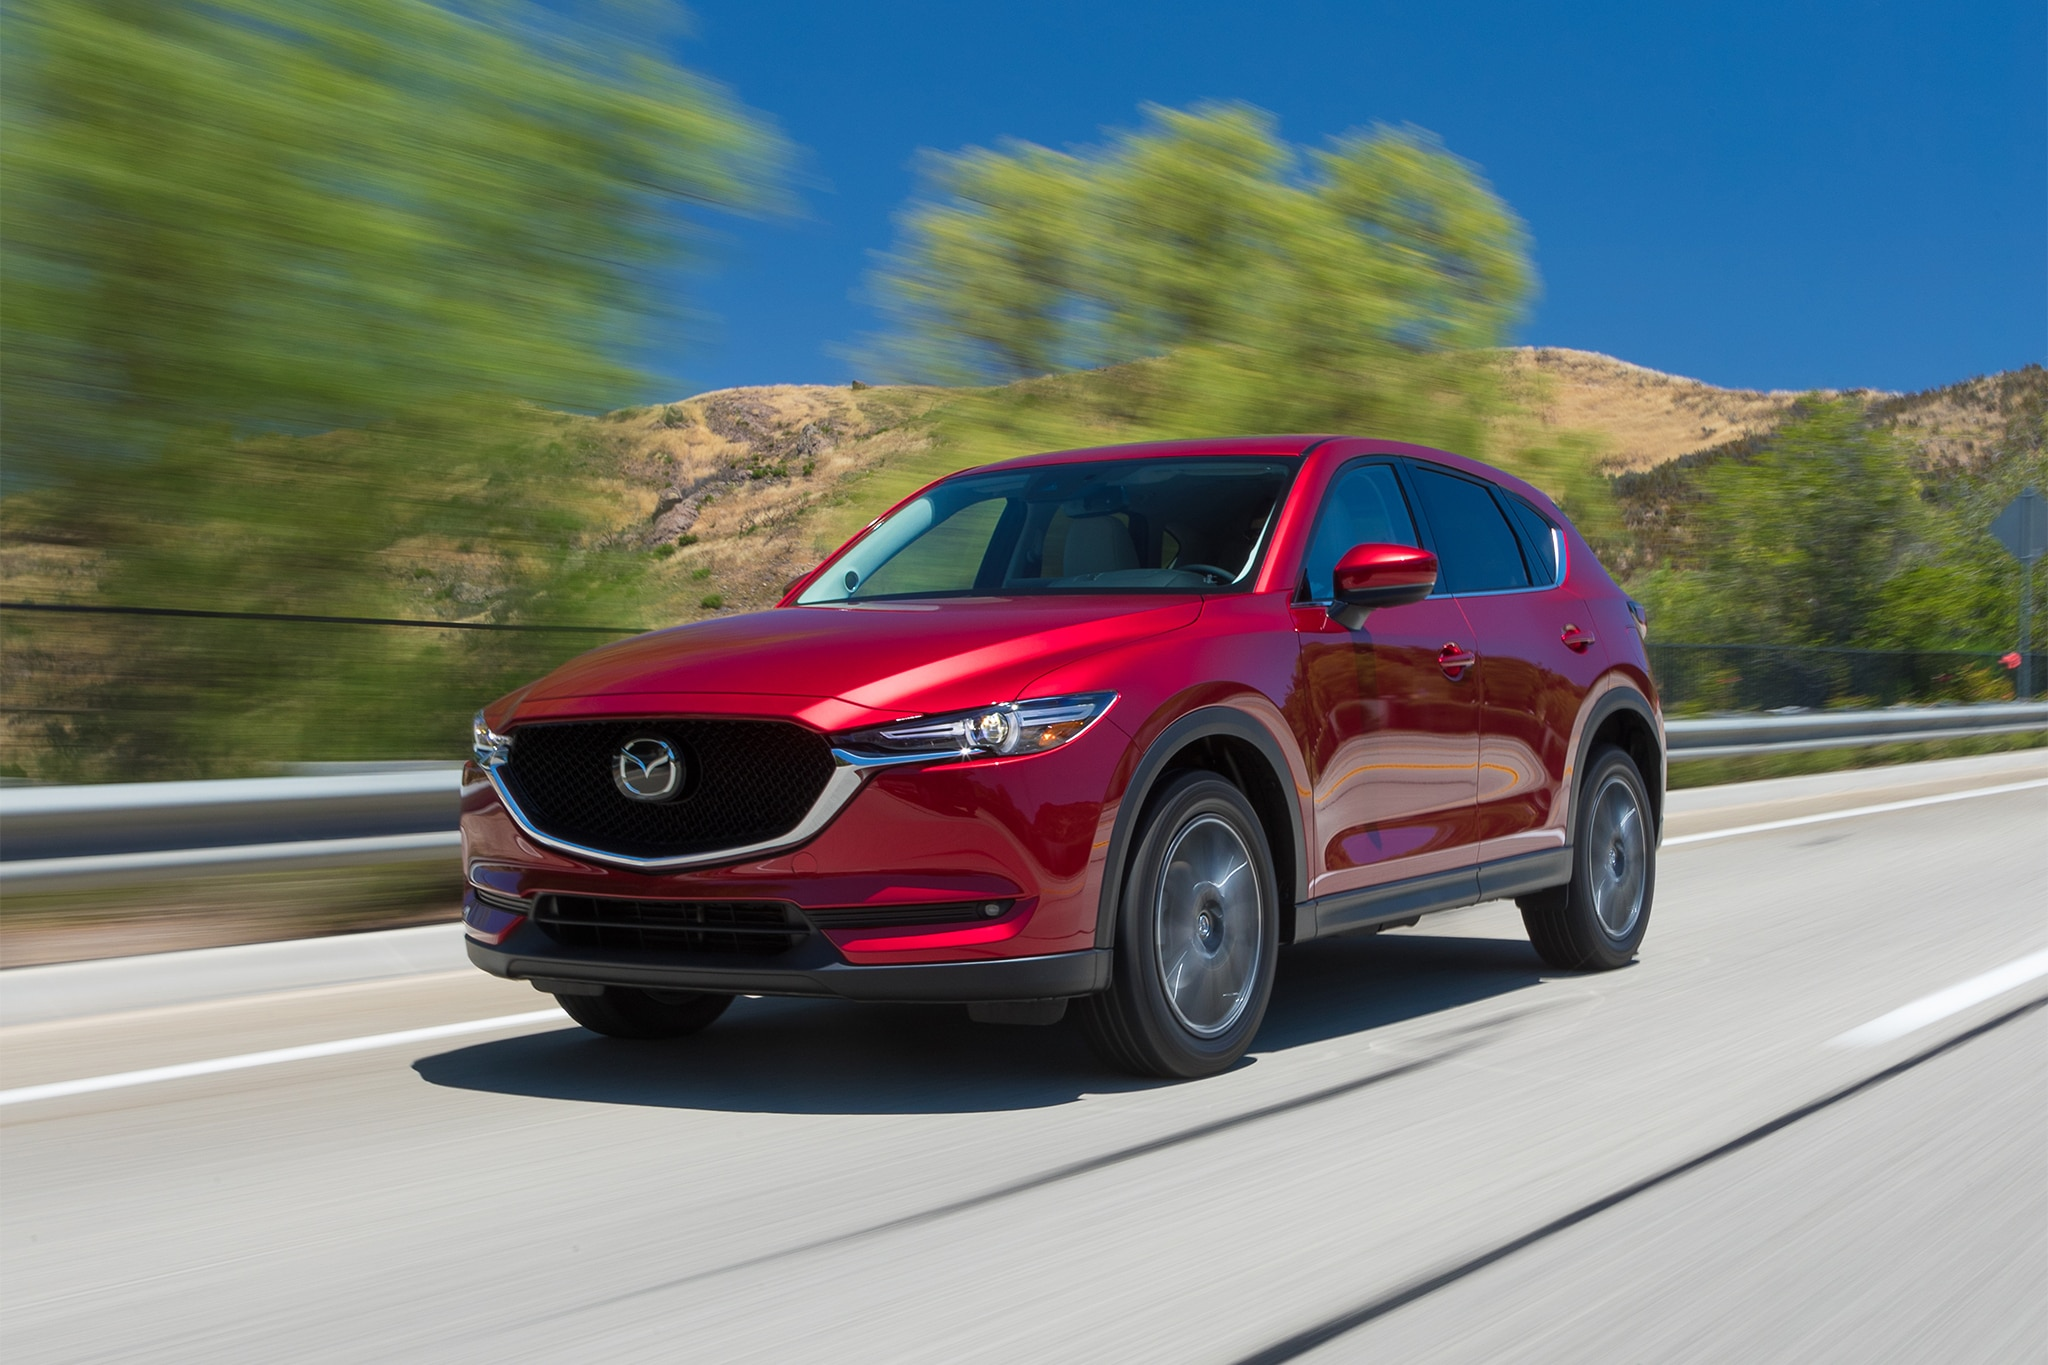 Four Seasons 2017 Mazda Cx 5 Grand Touring Introduction